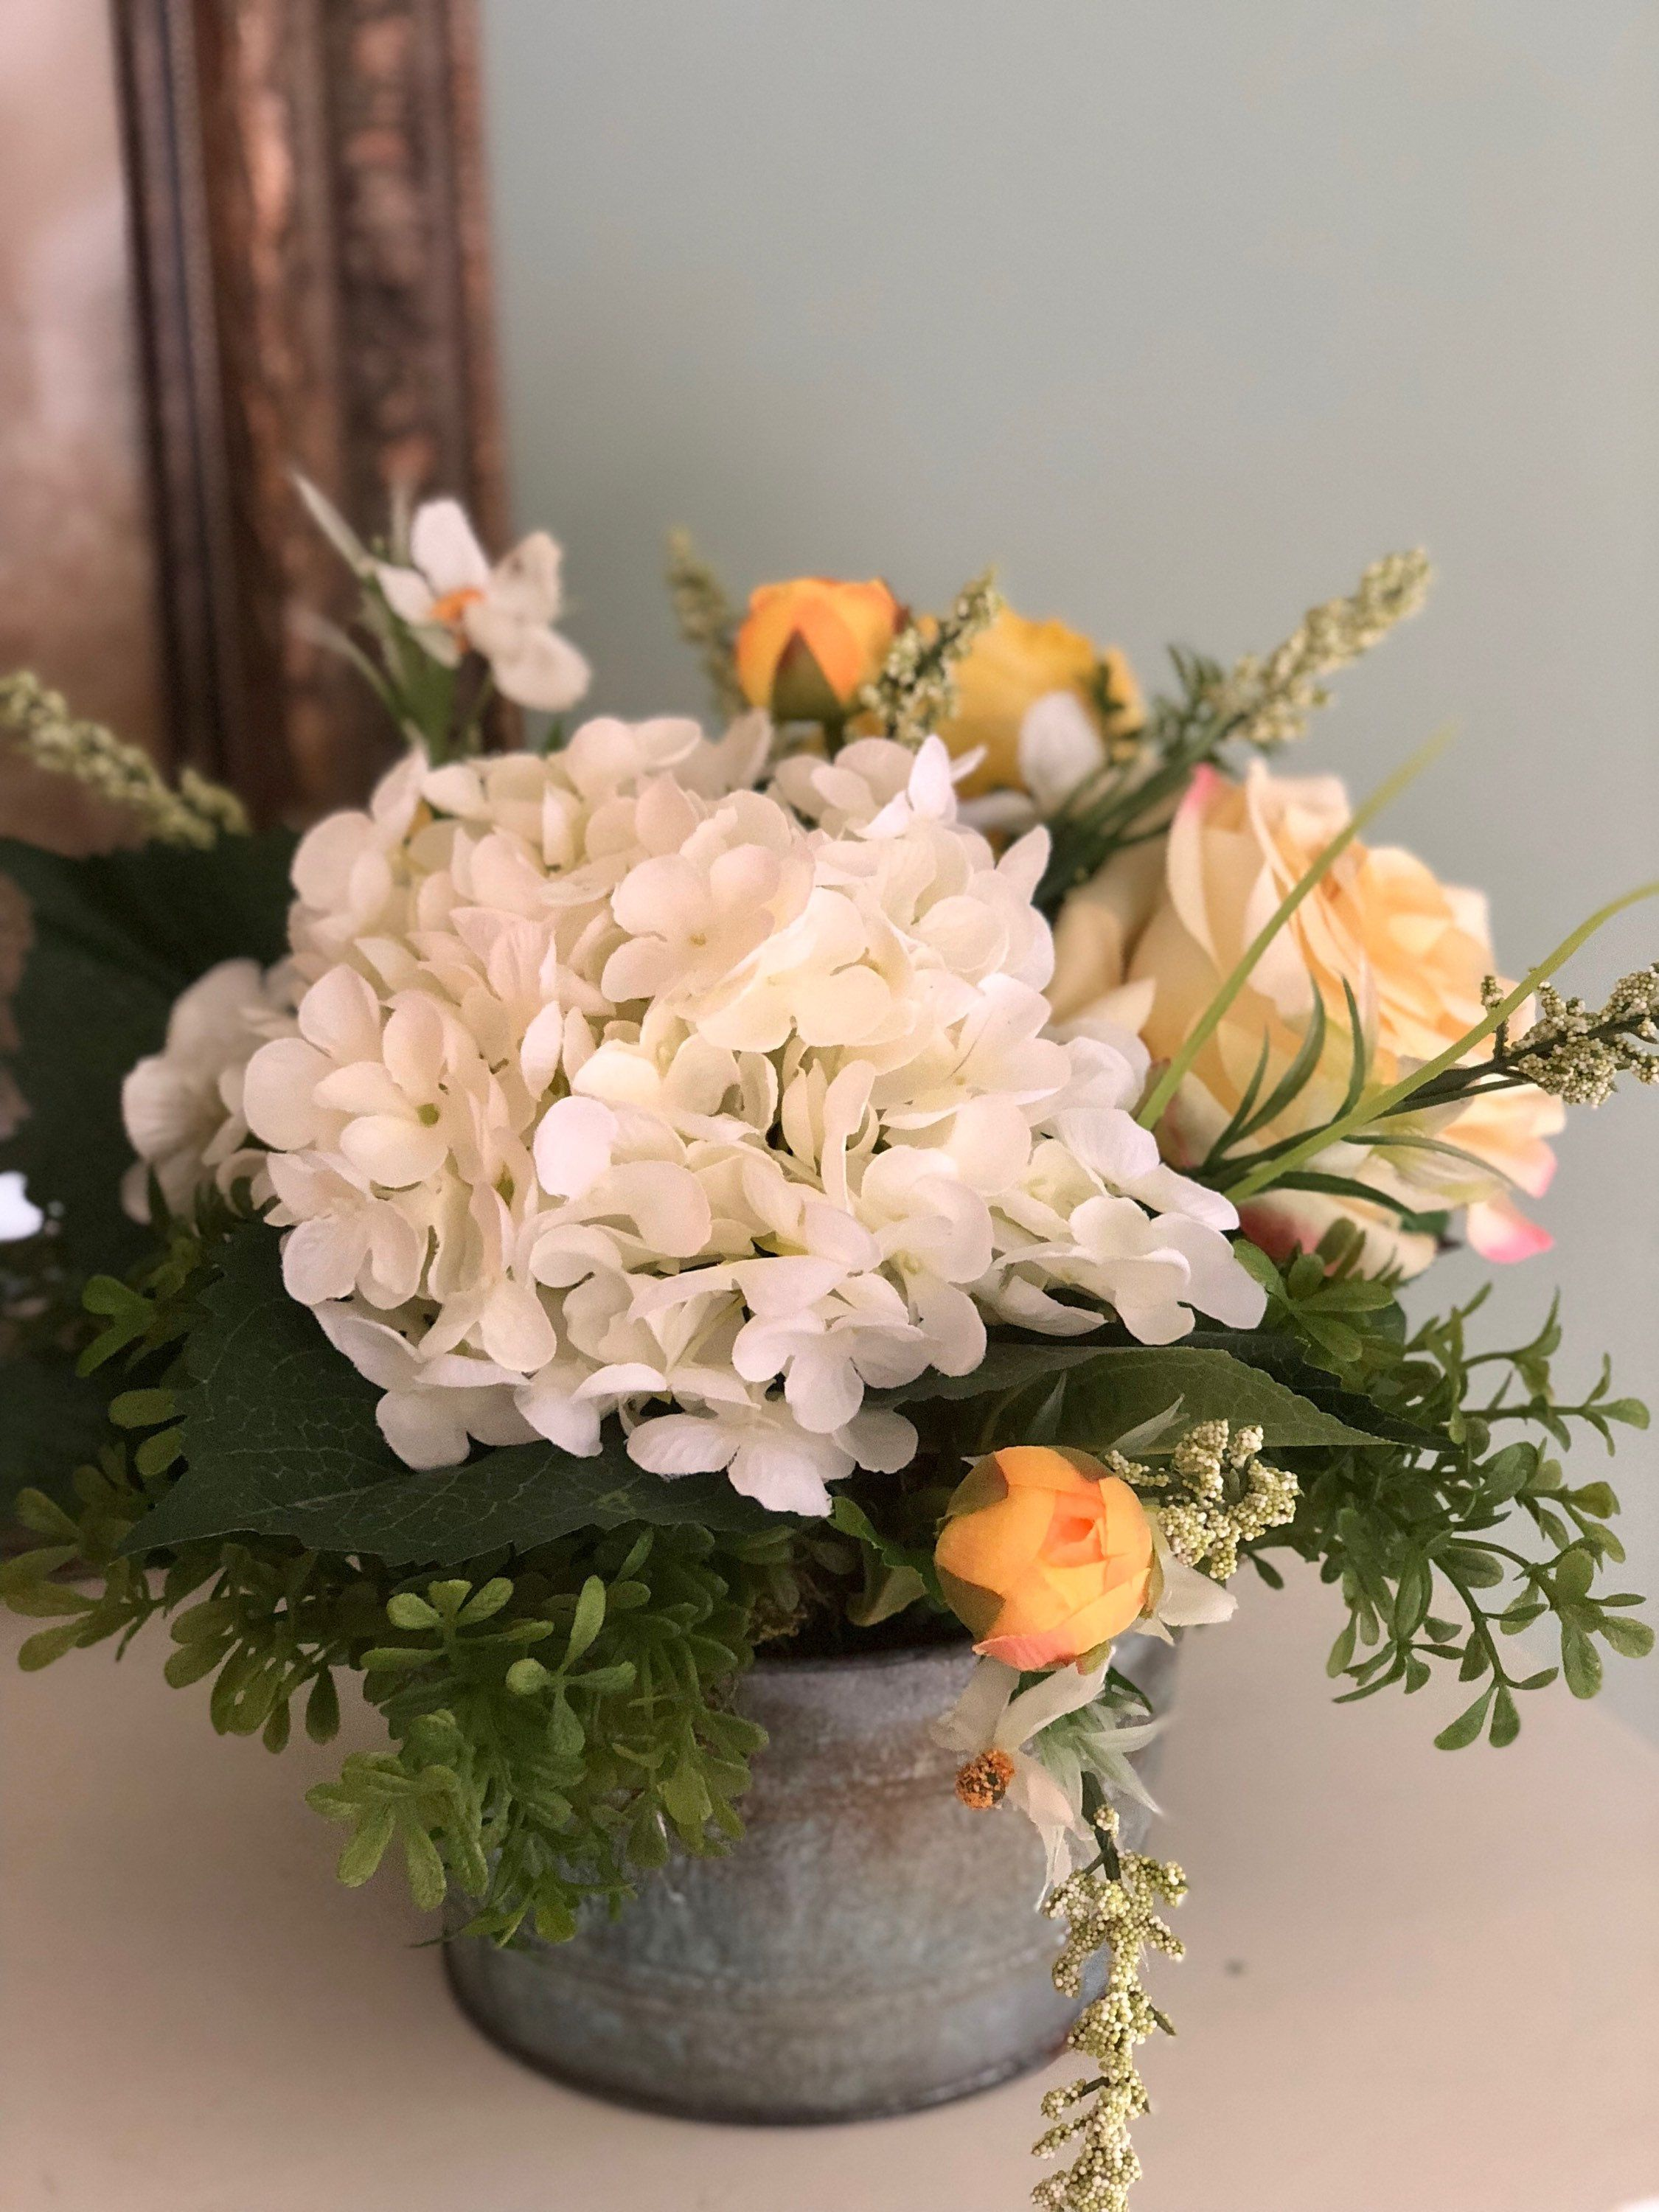 The Gloria Farmhouse Summer Centerpiece For Table Cottage Decor Hydrangea And Real T Dining Room Table Centerpieces Summer Centerpieces Cottage Decor Farmhouse